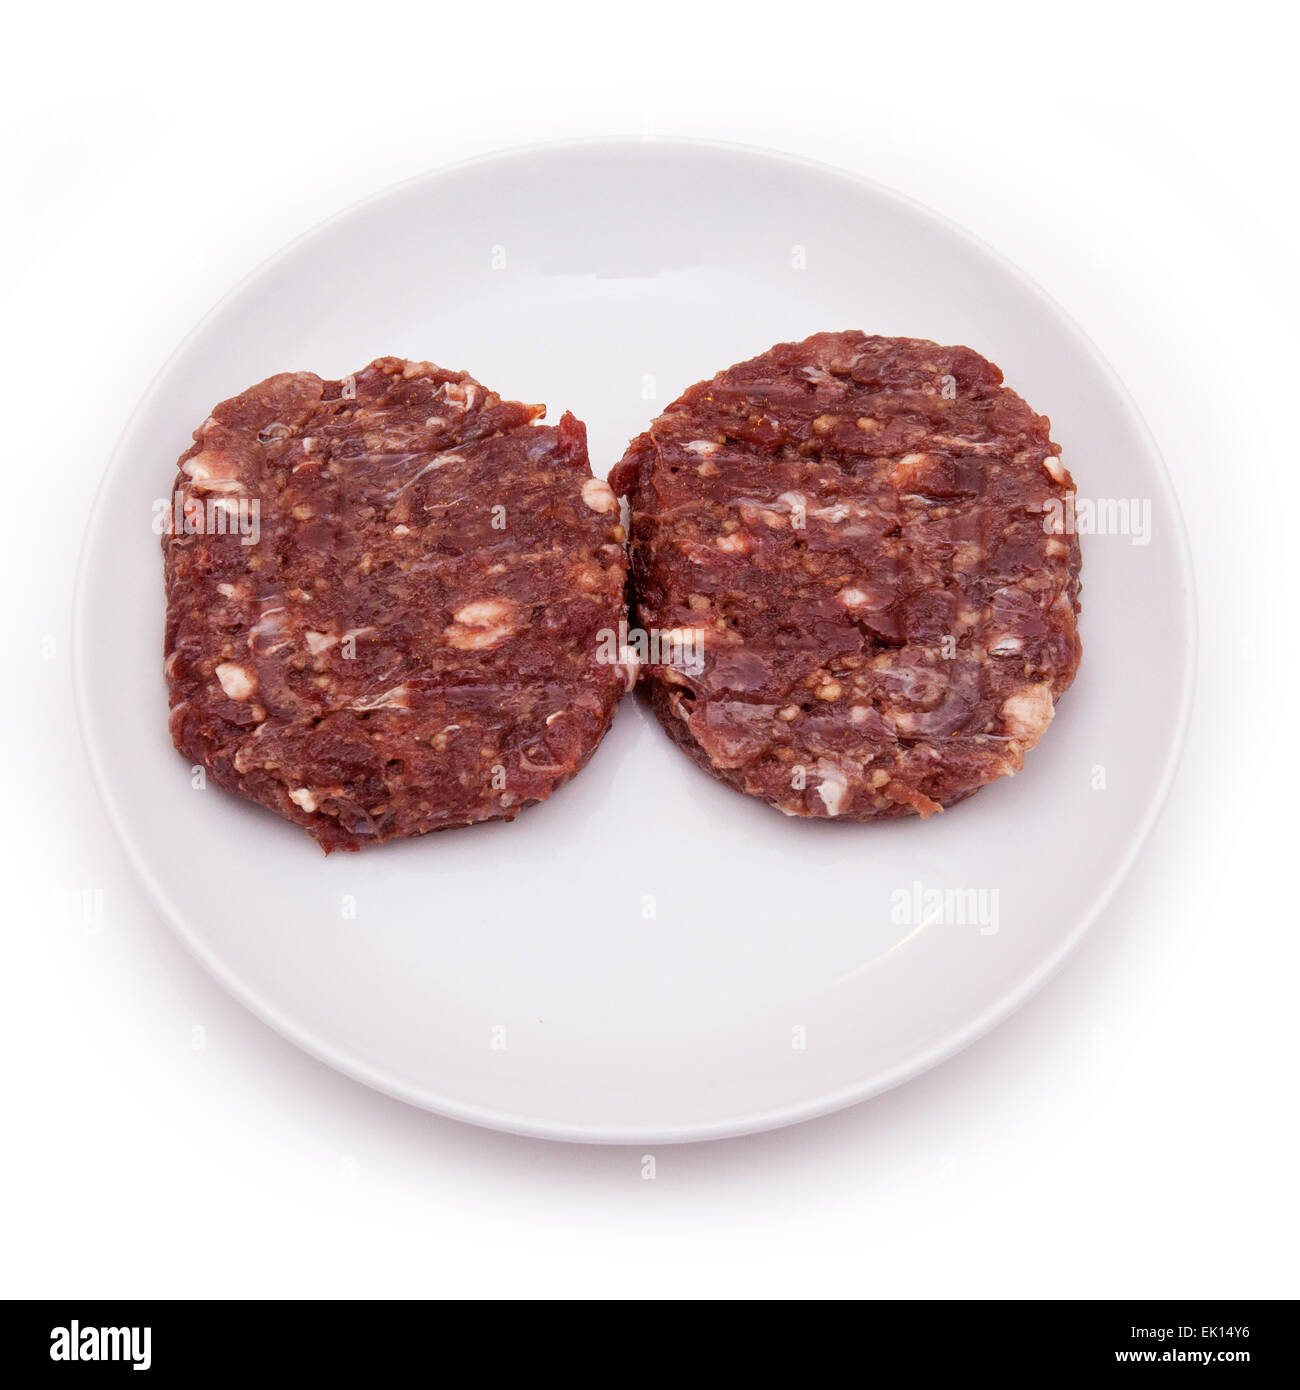 Kangaroo meat burgers uncooked isolated on a white studio background. Stock Photo